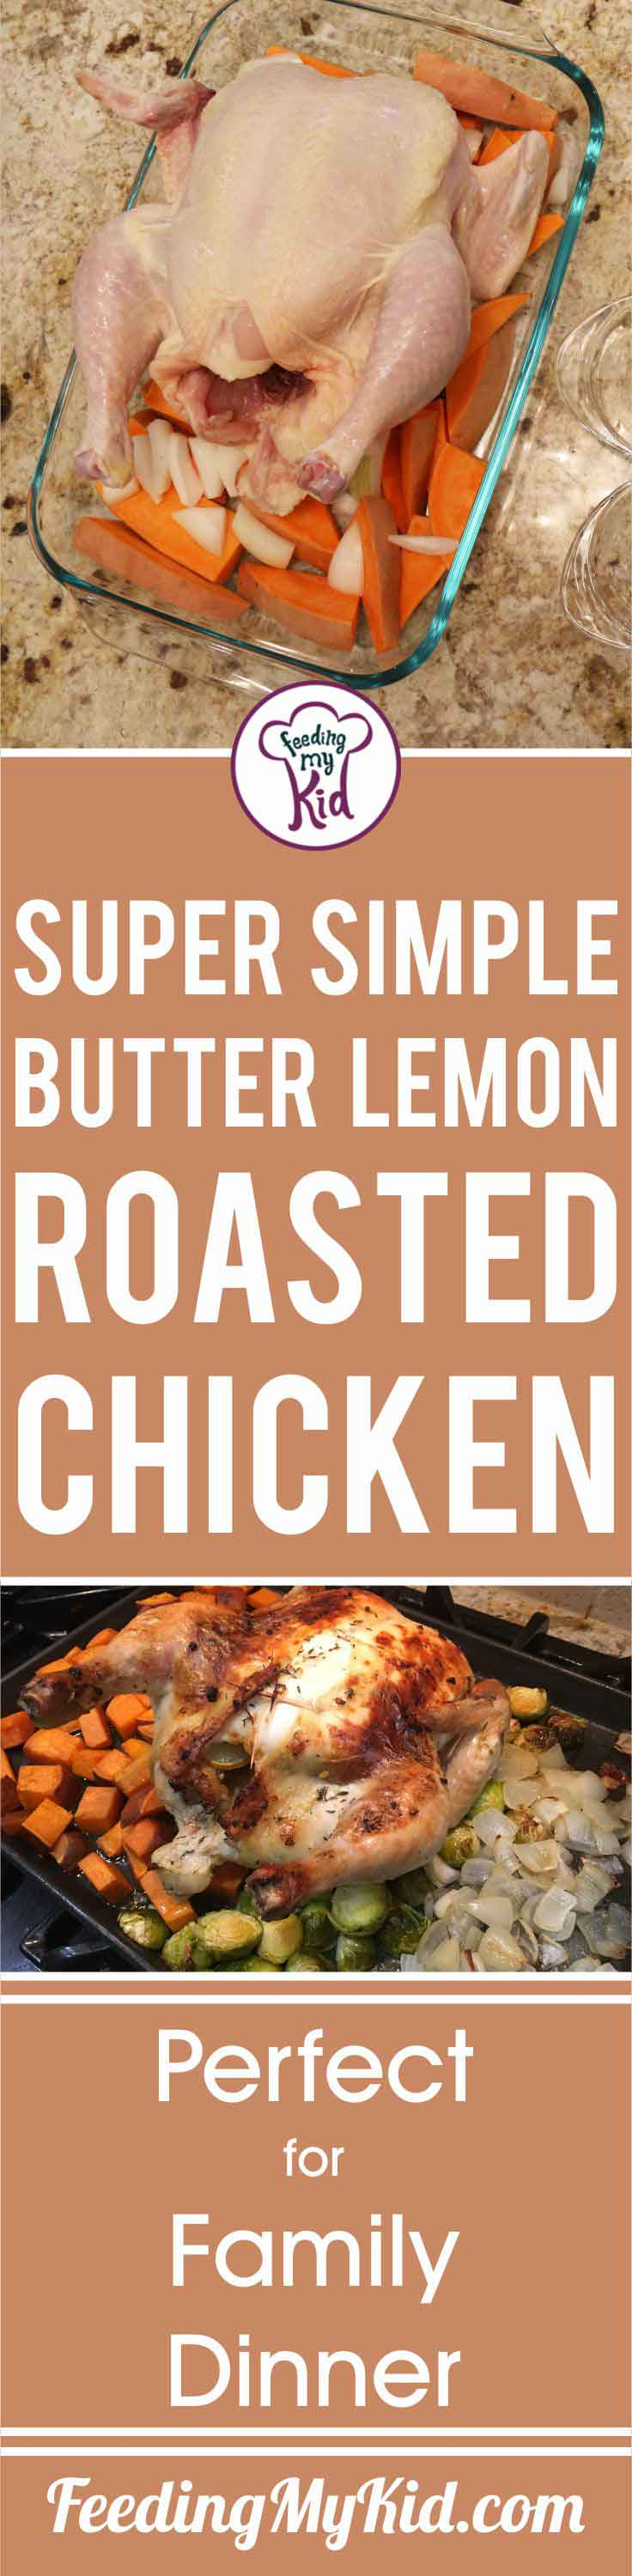 This lemon butter roast chicken is great for family dinners. Making a whole roast chicken is cost effective & perfect for meal planning for the entire week!